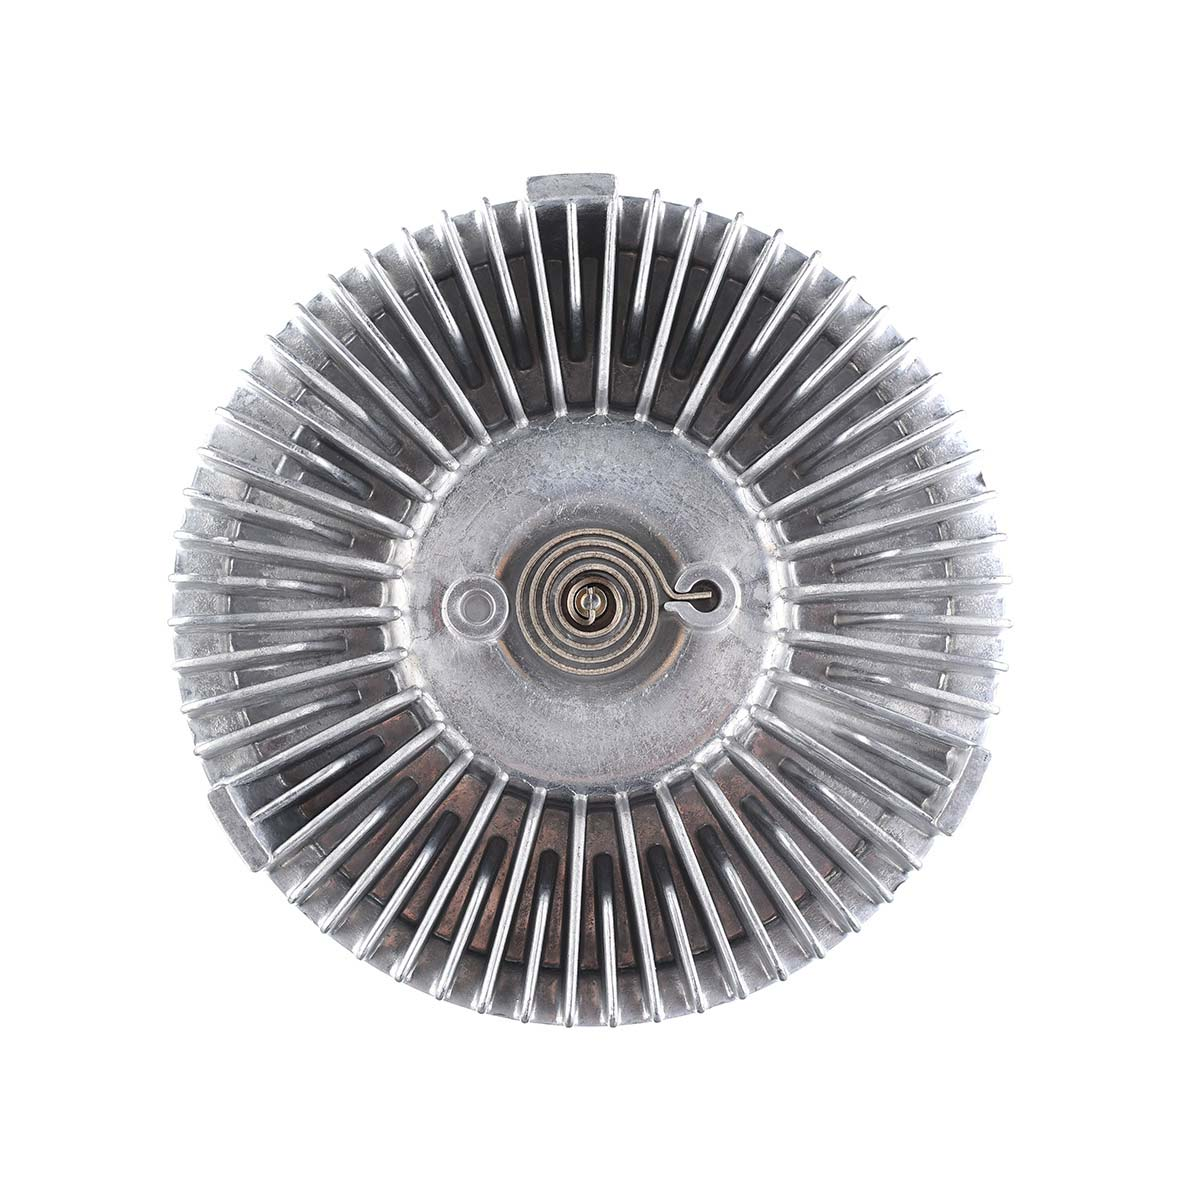 hight resolution of engine cooling fan clutch for ford ranger 1998 1999 2011 explorer sport trac mazda b4000